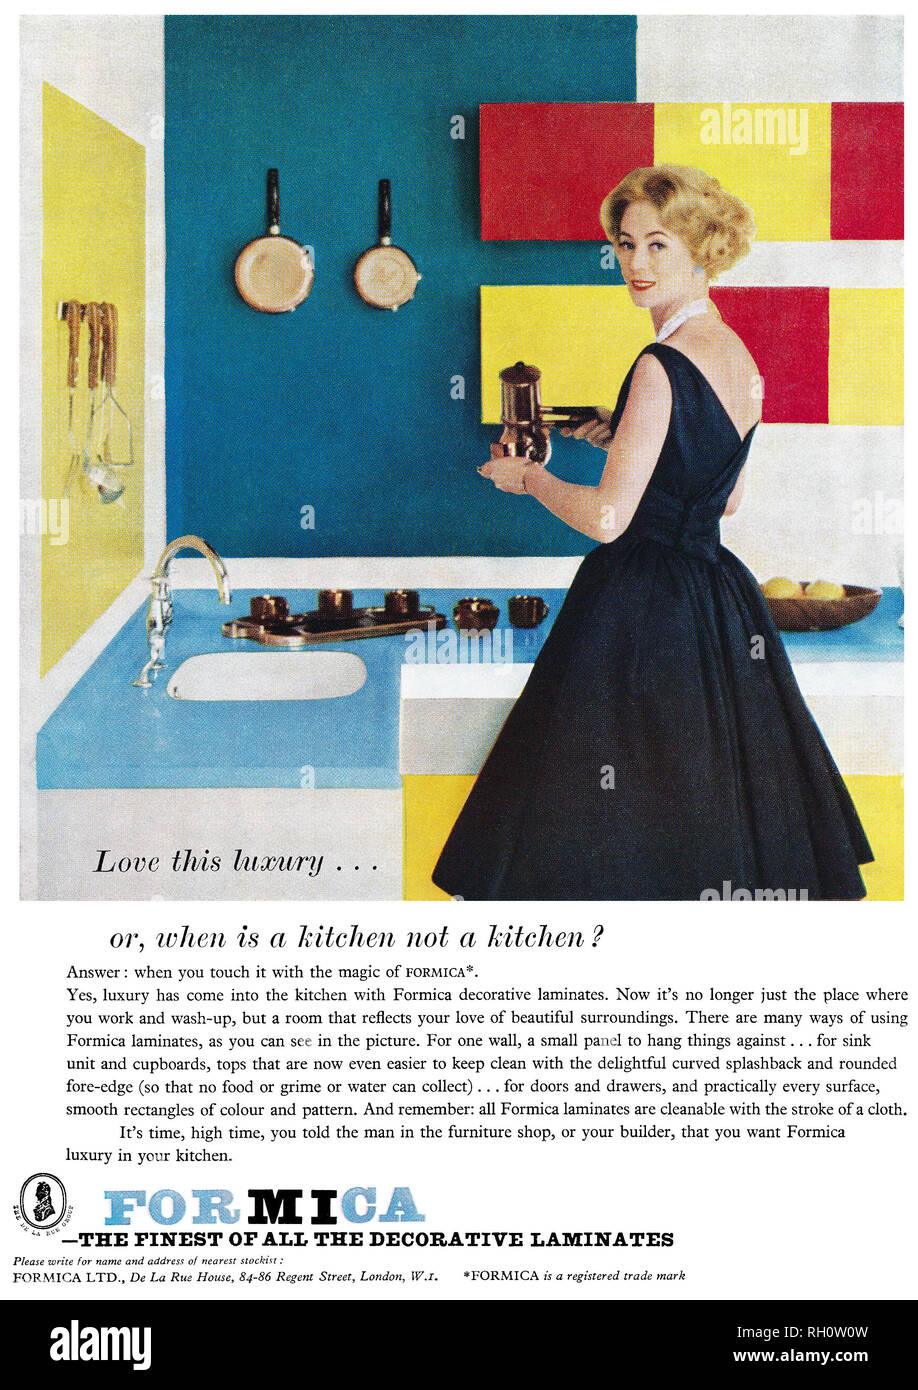 1961 British advertisement for Formica laminated plastic work surfaces. - Stock Image